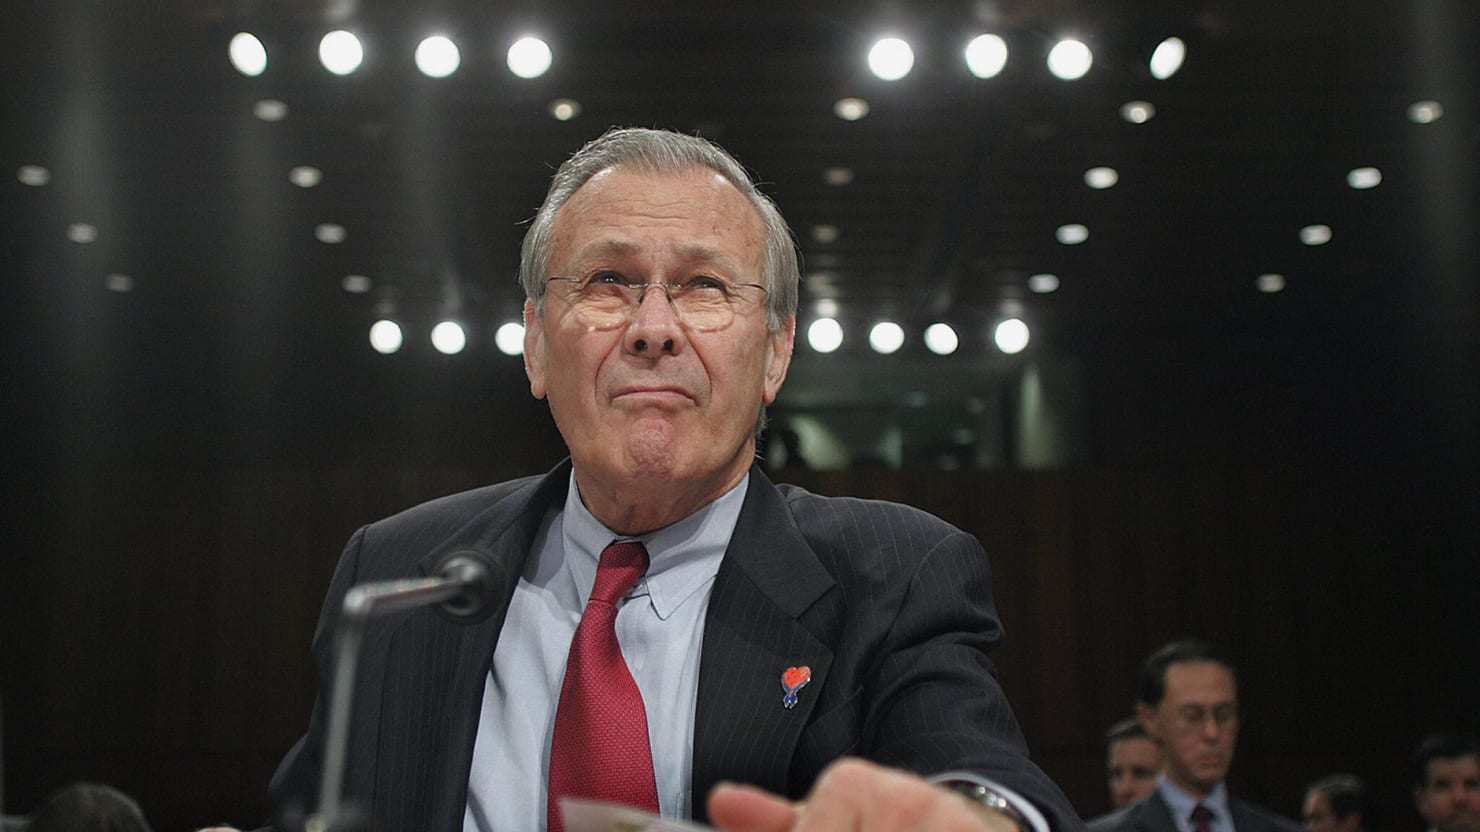 'Rumsfeld's Rules' Review: Good Rules, Shame He Didn't Follow Them